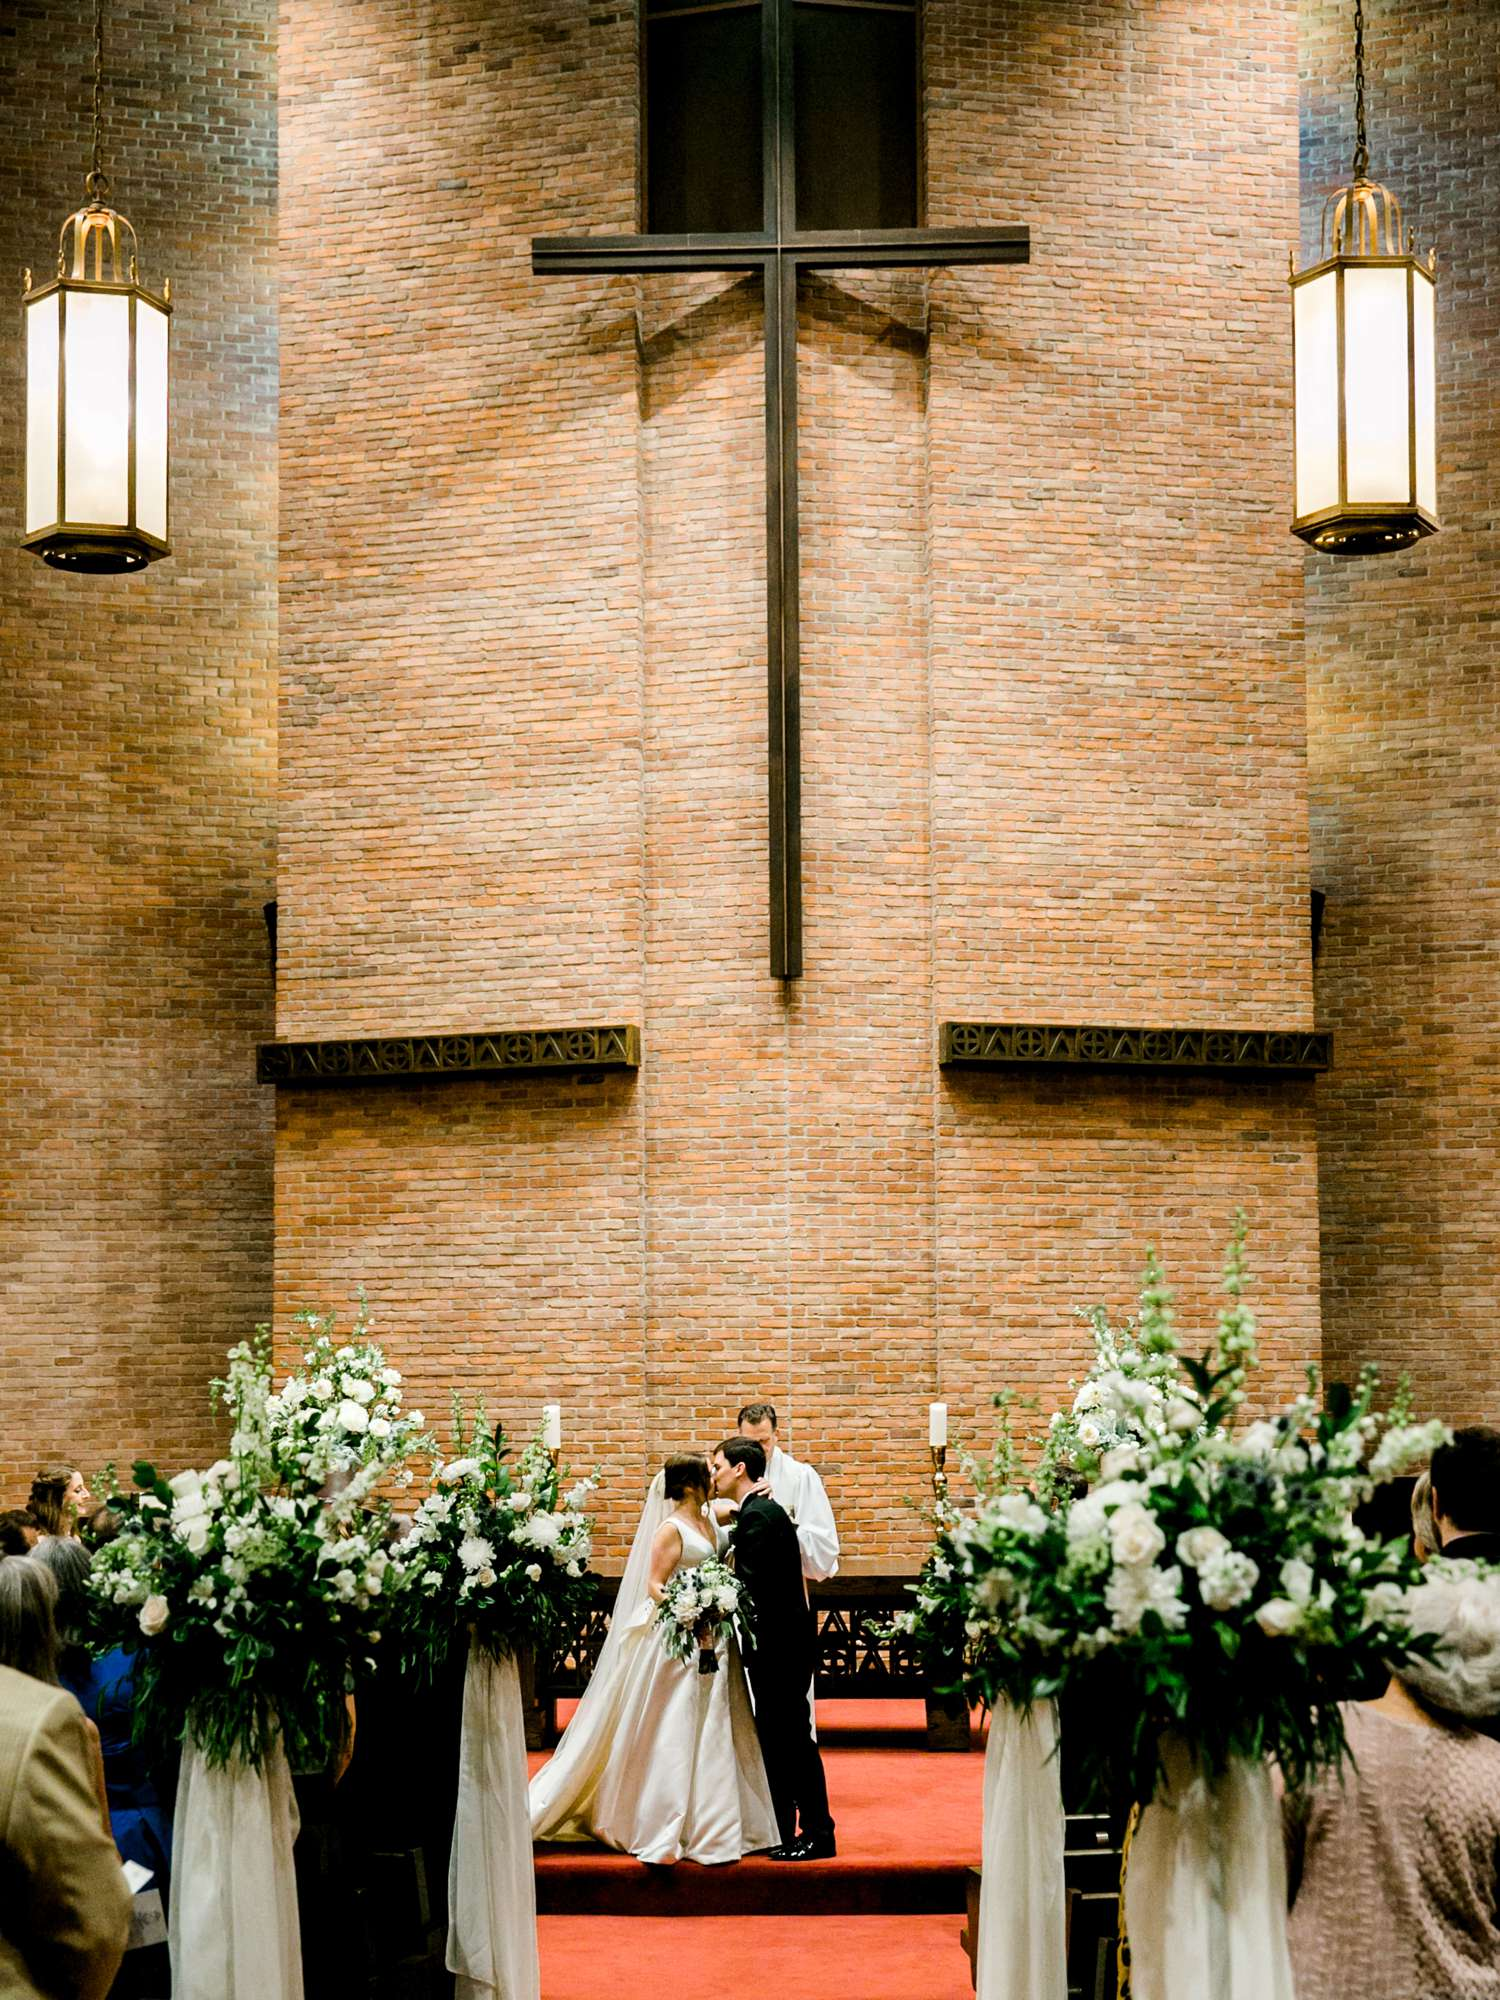 HANNAH+CRAIG+CHILDS+TEXAS+TECH+WEDDING+ALLEEJ+LUBBOCK+PHOTOGRAPHER_0091.jpg